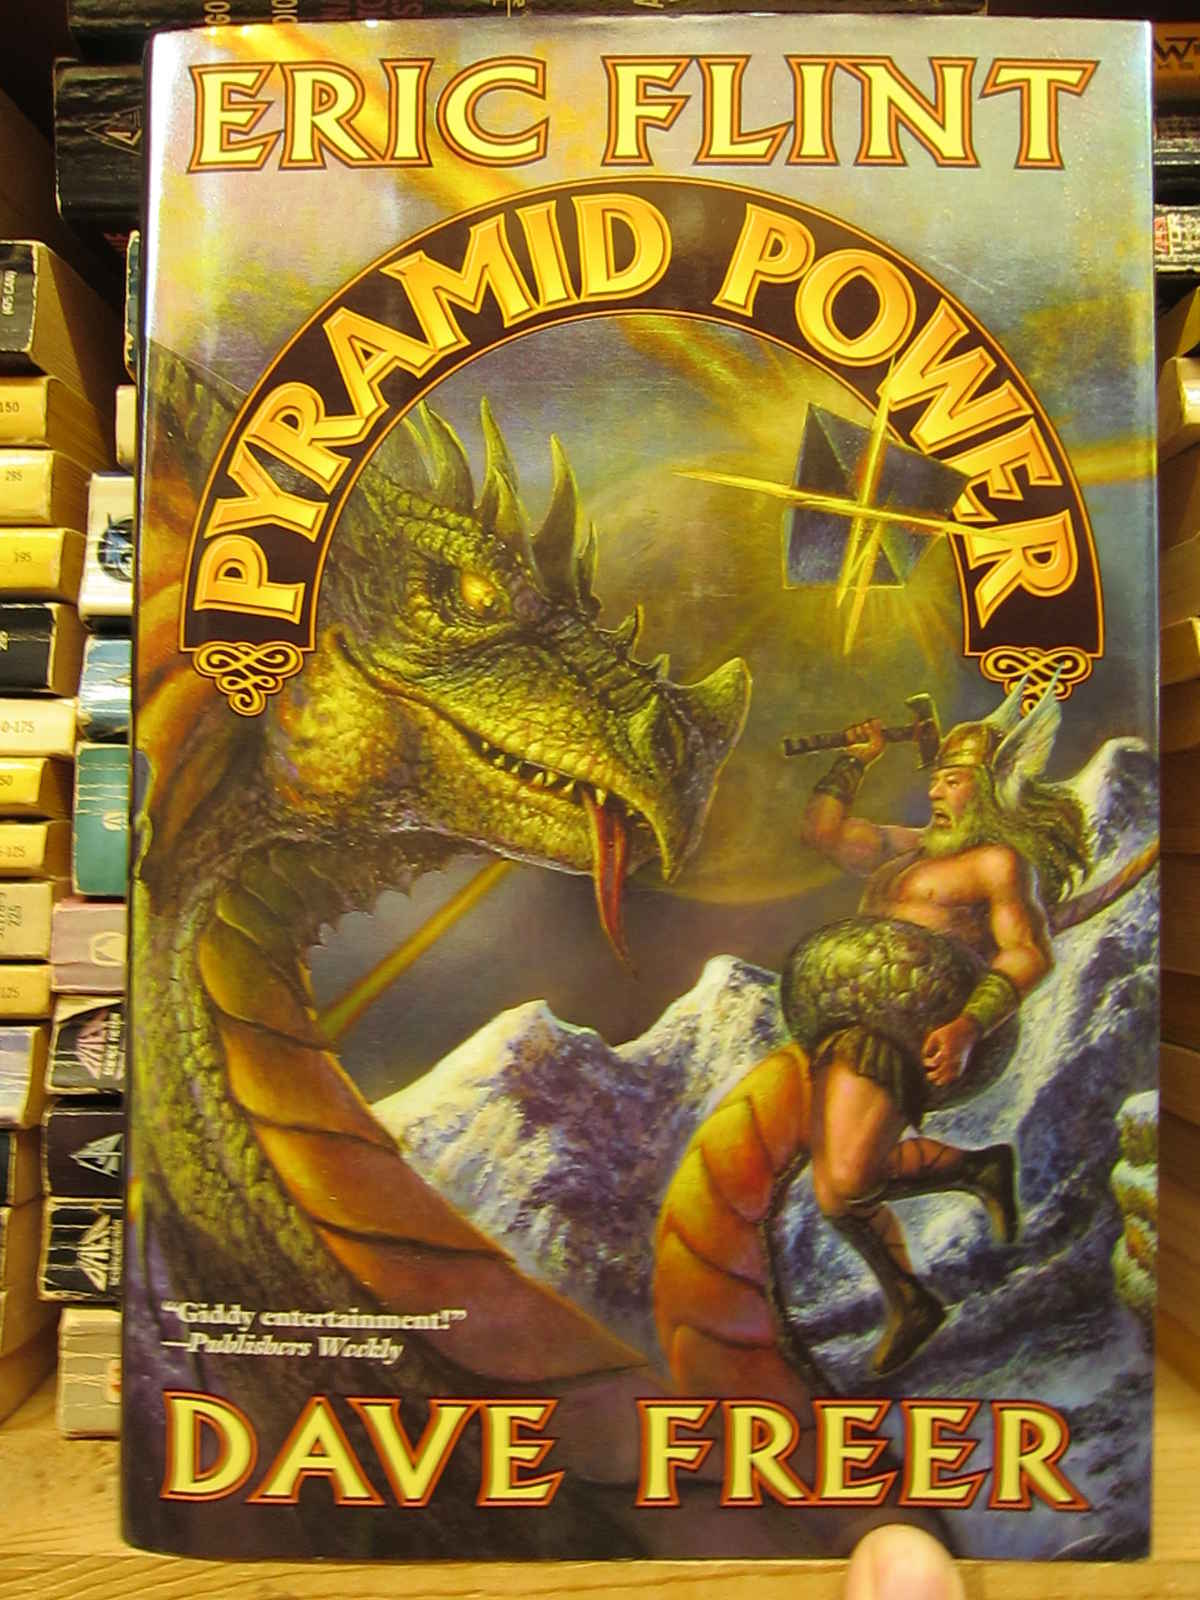 When attacked by dragons, use PYRAMID POWER double strength!